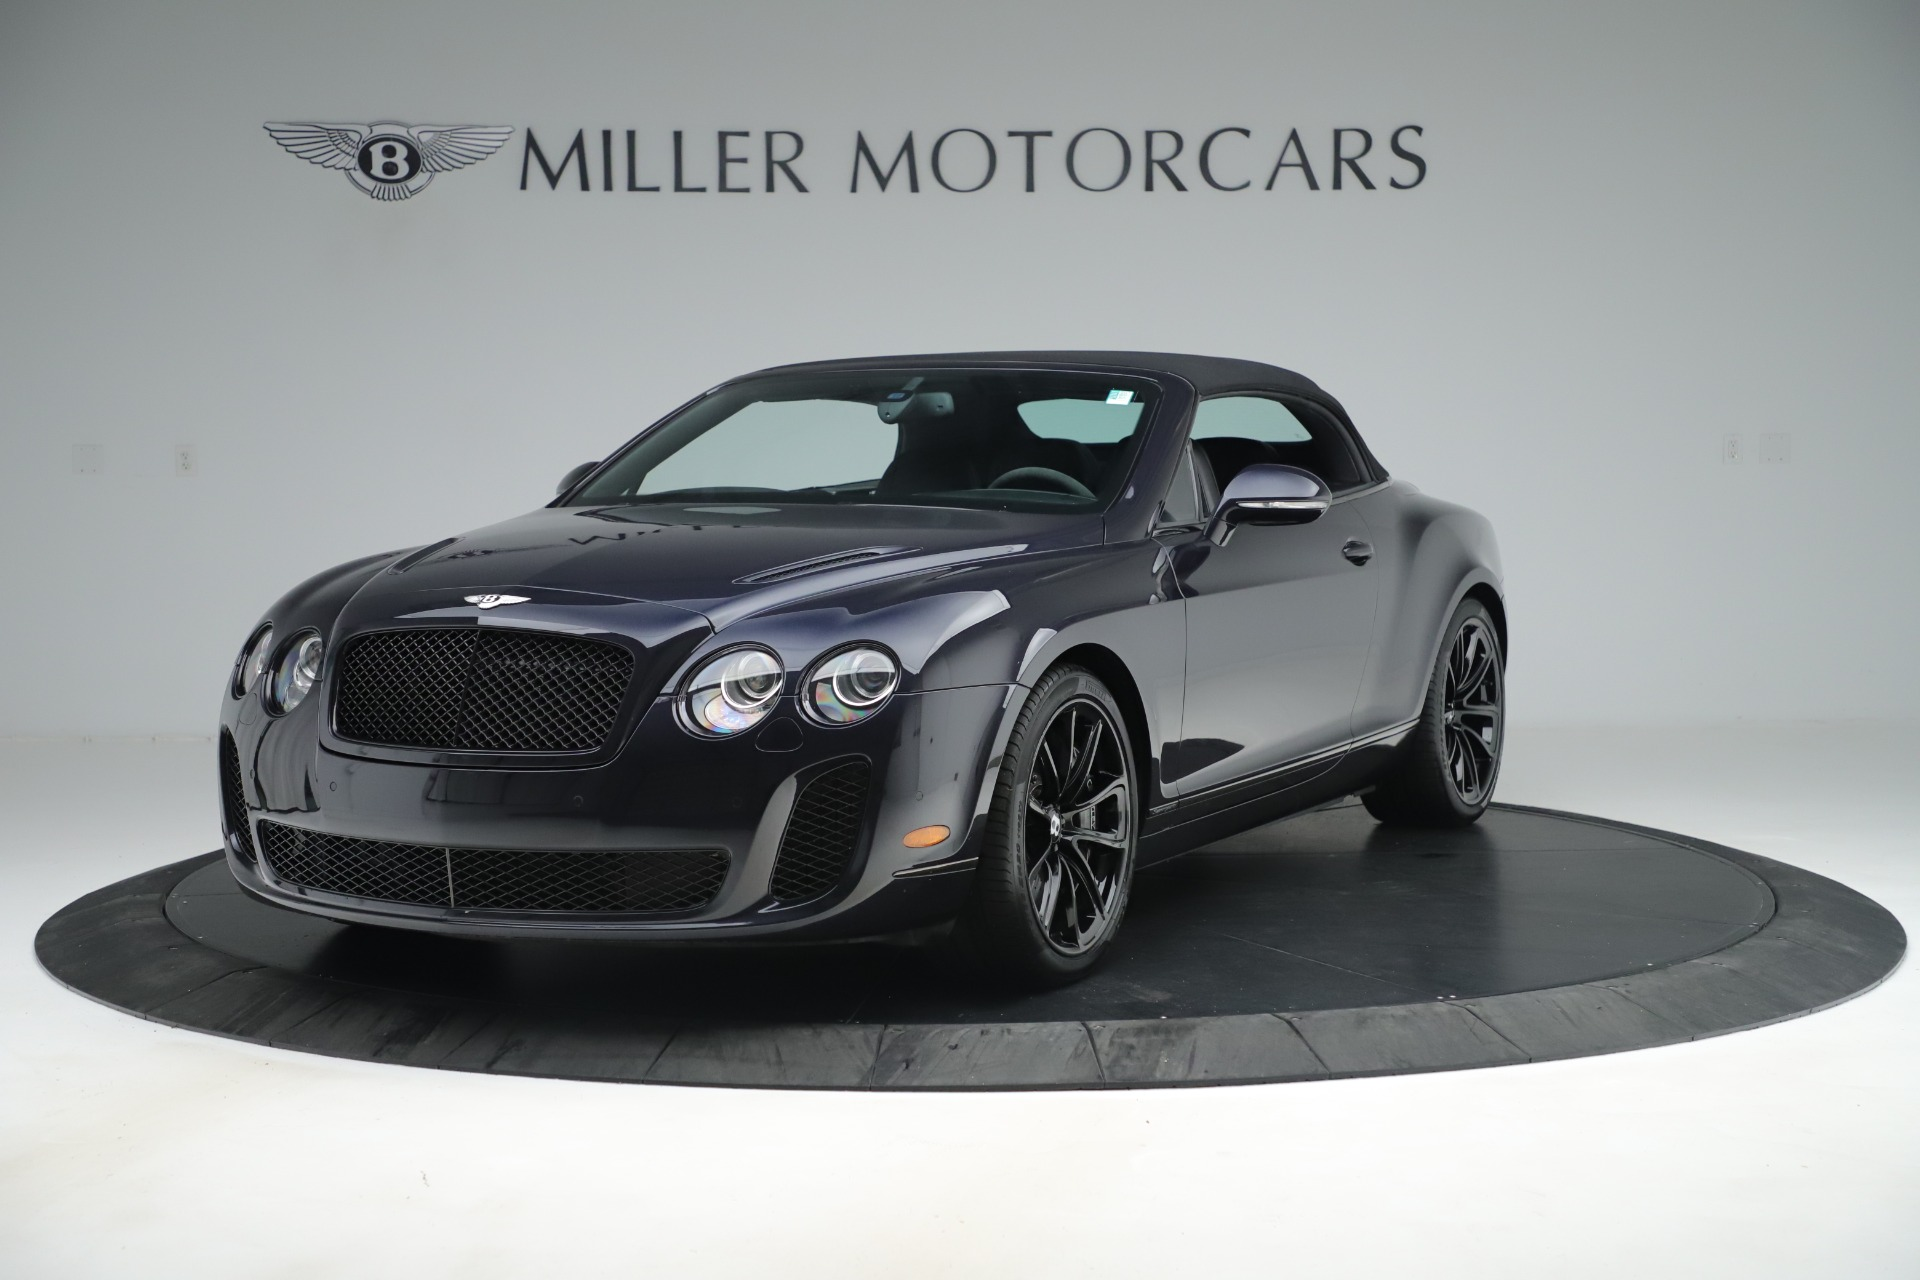 Used 2012 Bentley Continental Supersports Supersports For Sale In Greenwich, CT 3214_p13